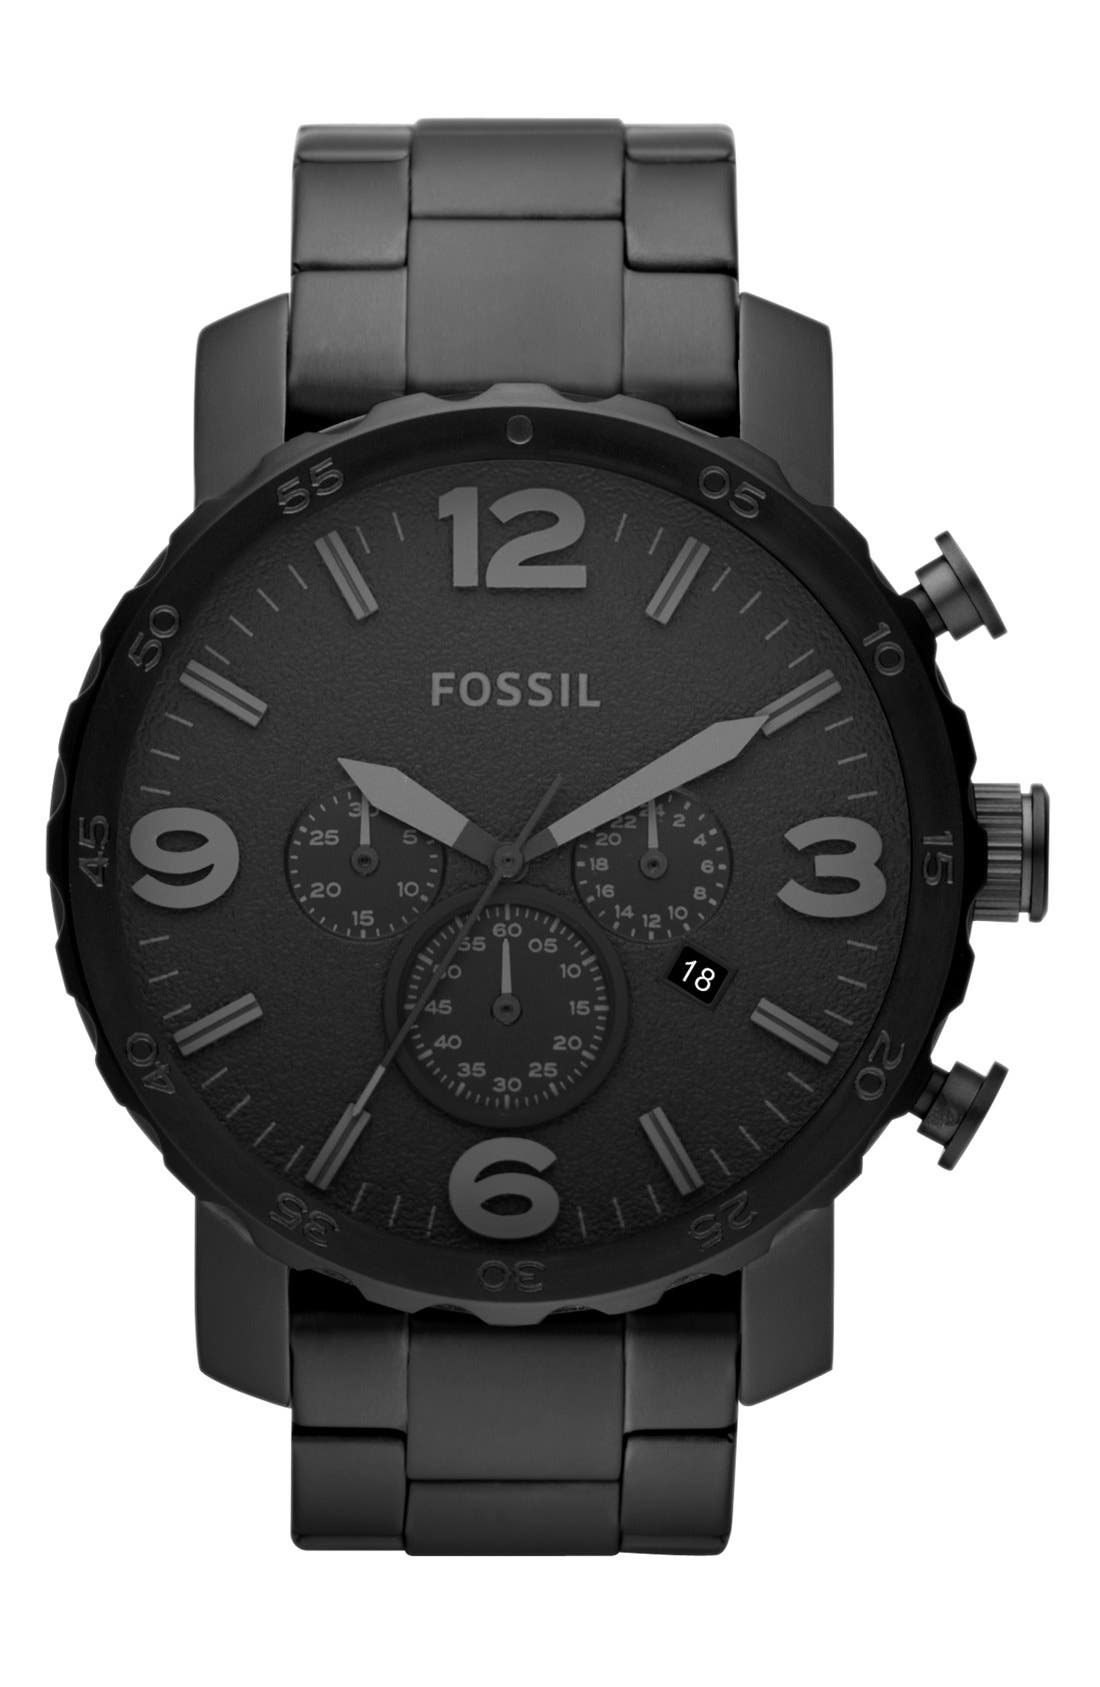 FOSSIL, 'Nate' Chronograph Bracelet Watch, 50mm, Main thumbnail 1, color, 001